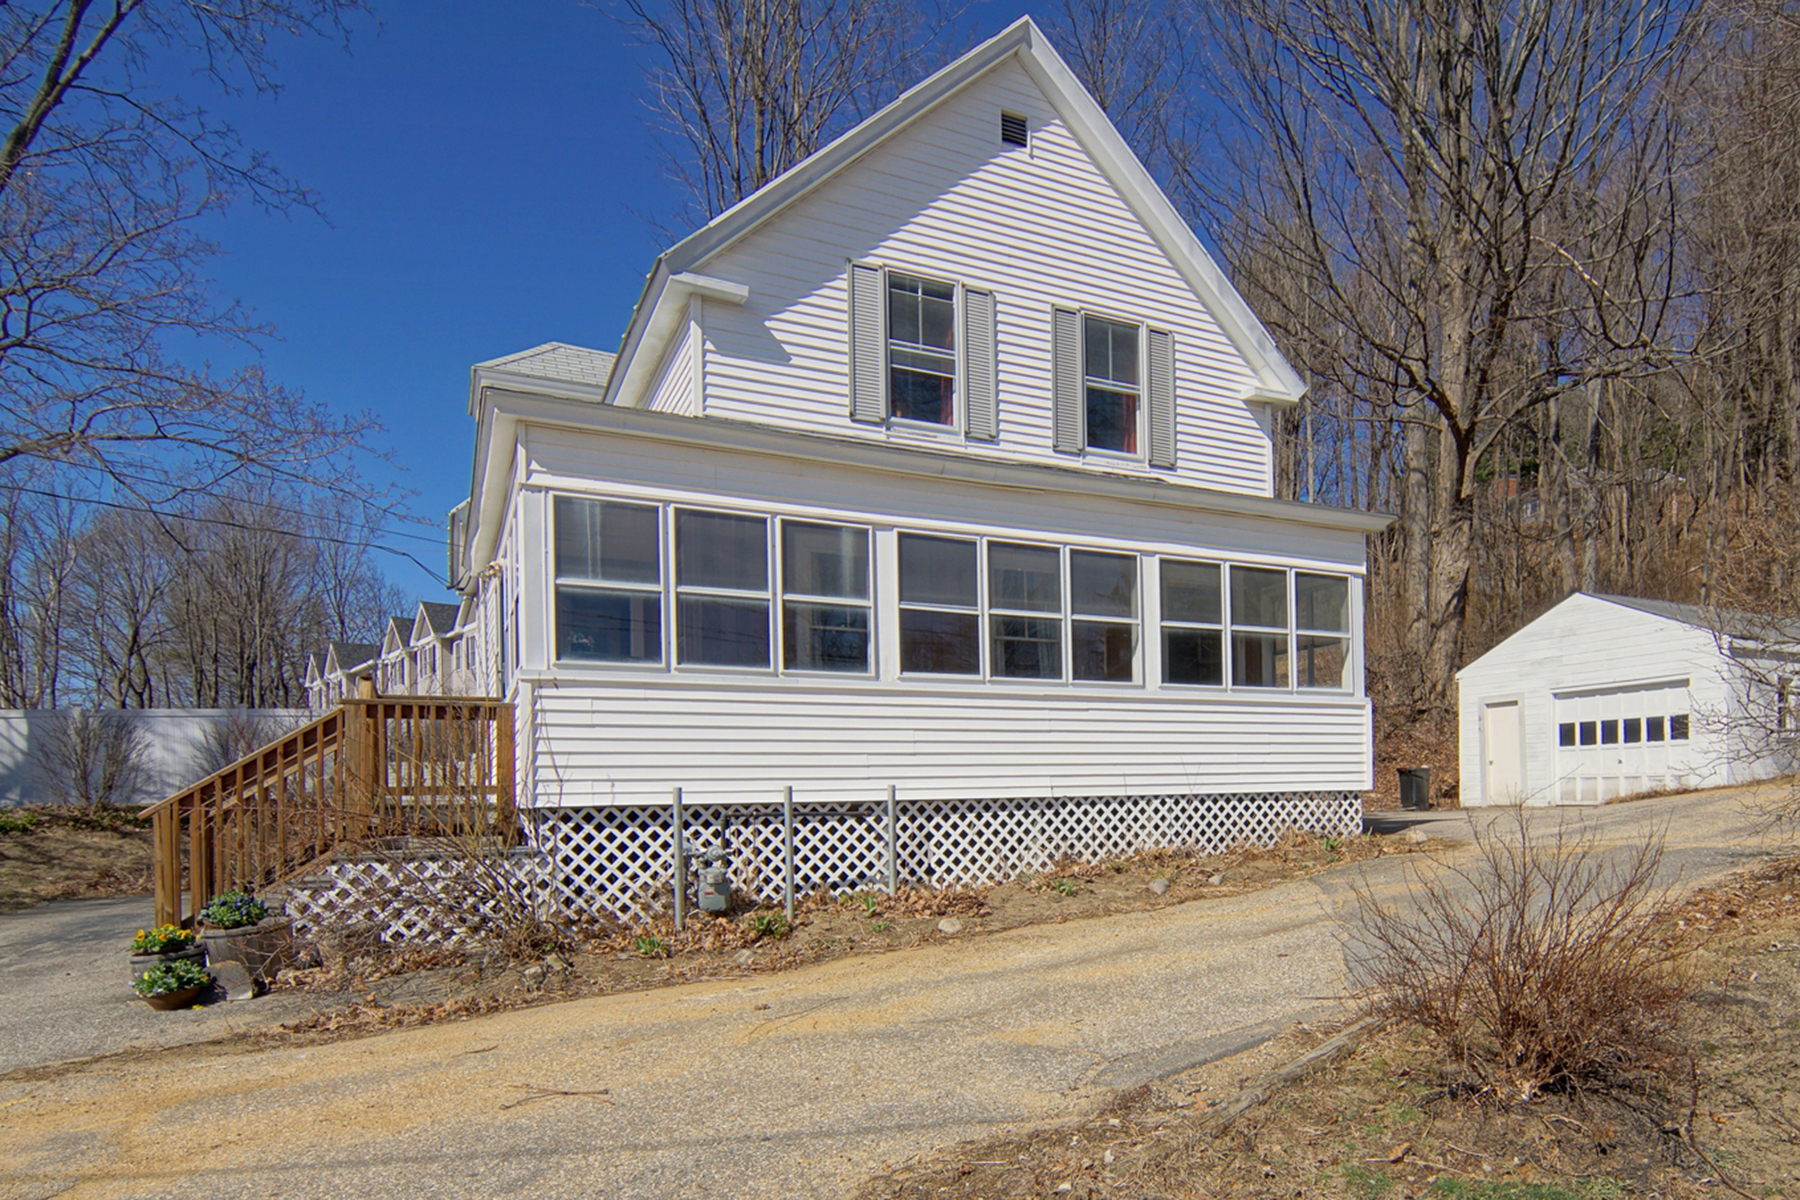 Single Family Home for Sale at Private New Englander Adjacent to Garrison Park Trails in Historic Dover, NH 12 Brick Road Dover, New Hampshire 03820 United States